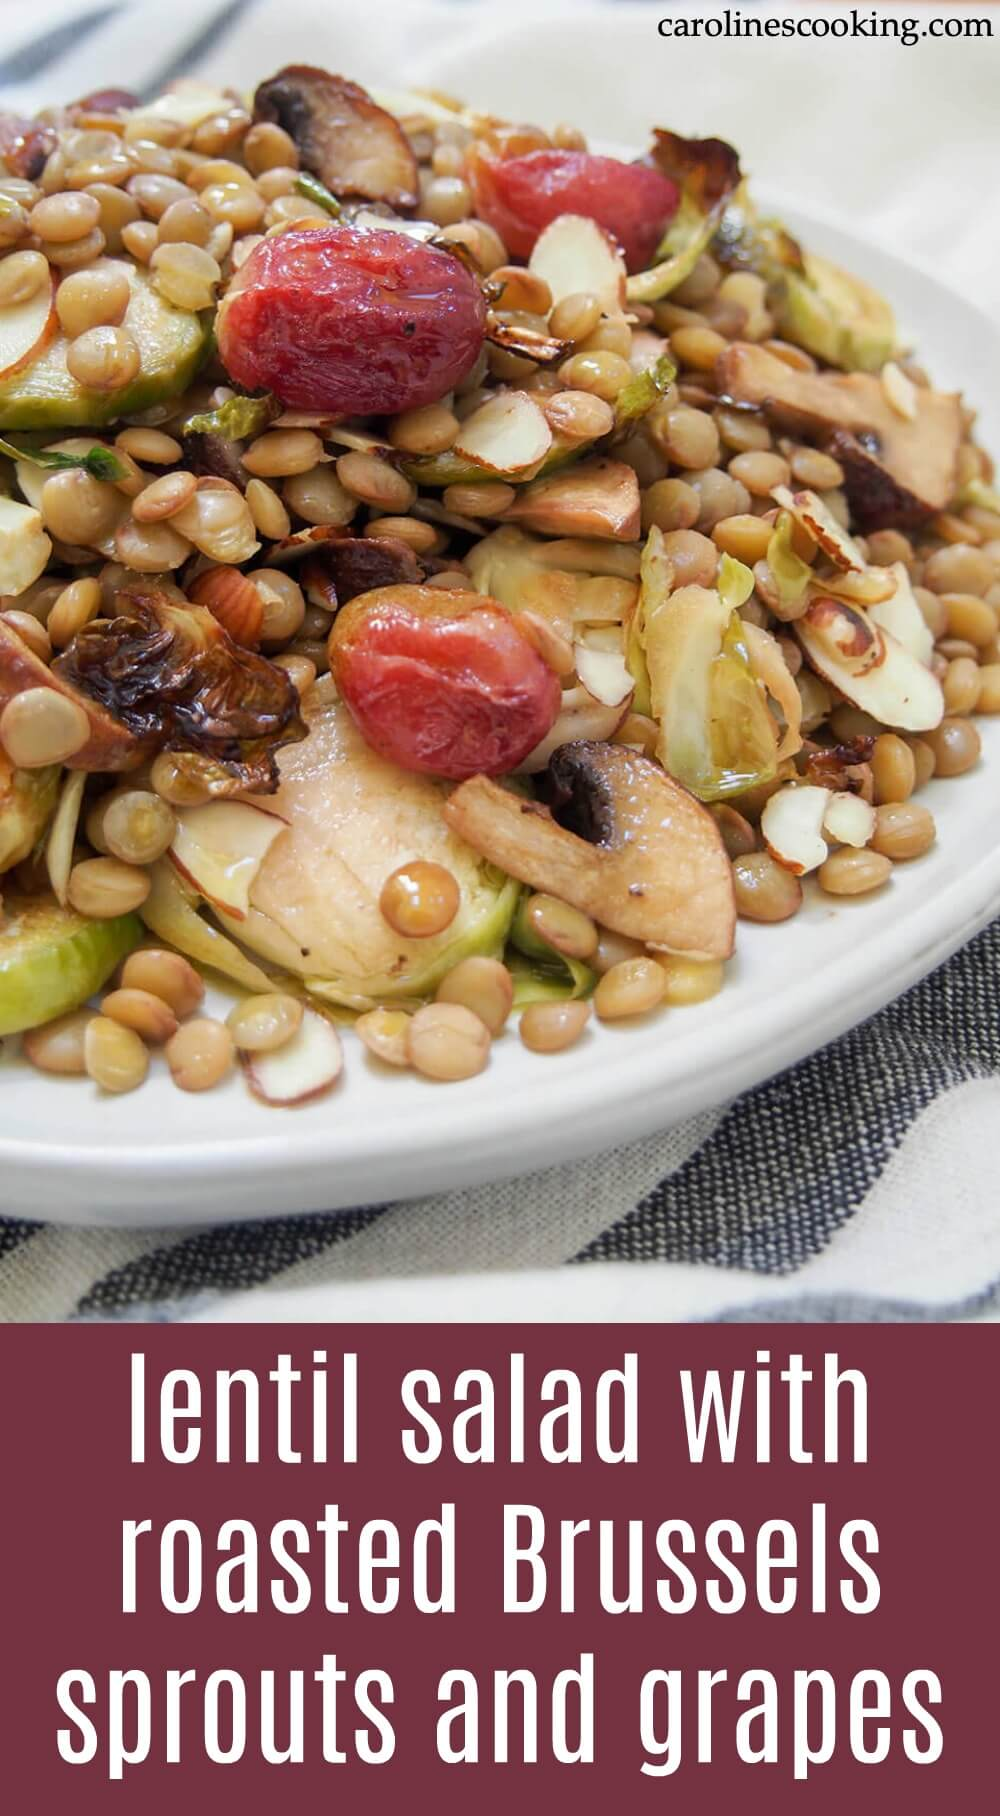 This vegan lentil salad combines earthy lentils with flavorful roasted Brussels sprouts, mushrooms and grapes. It's incredibly easy to make and so versatile in how you enjoy it - have it as a side, lunch, either warm or room temperature. Healthy delicious. #lentilsalad #vegan #roastedvegetables